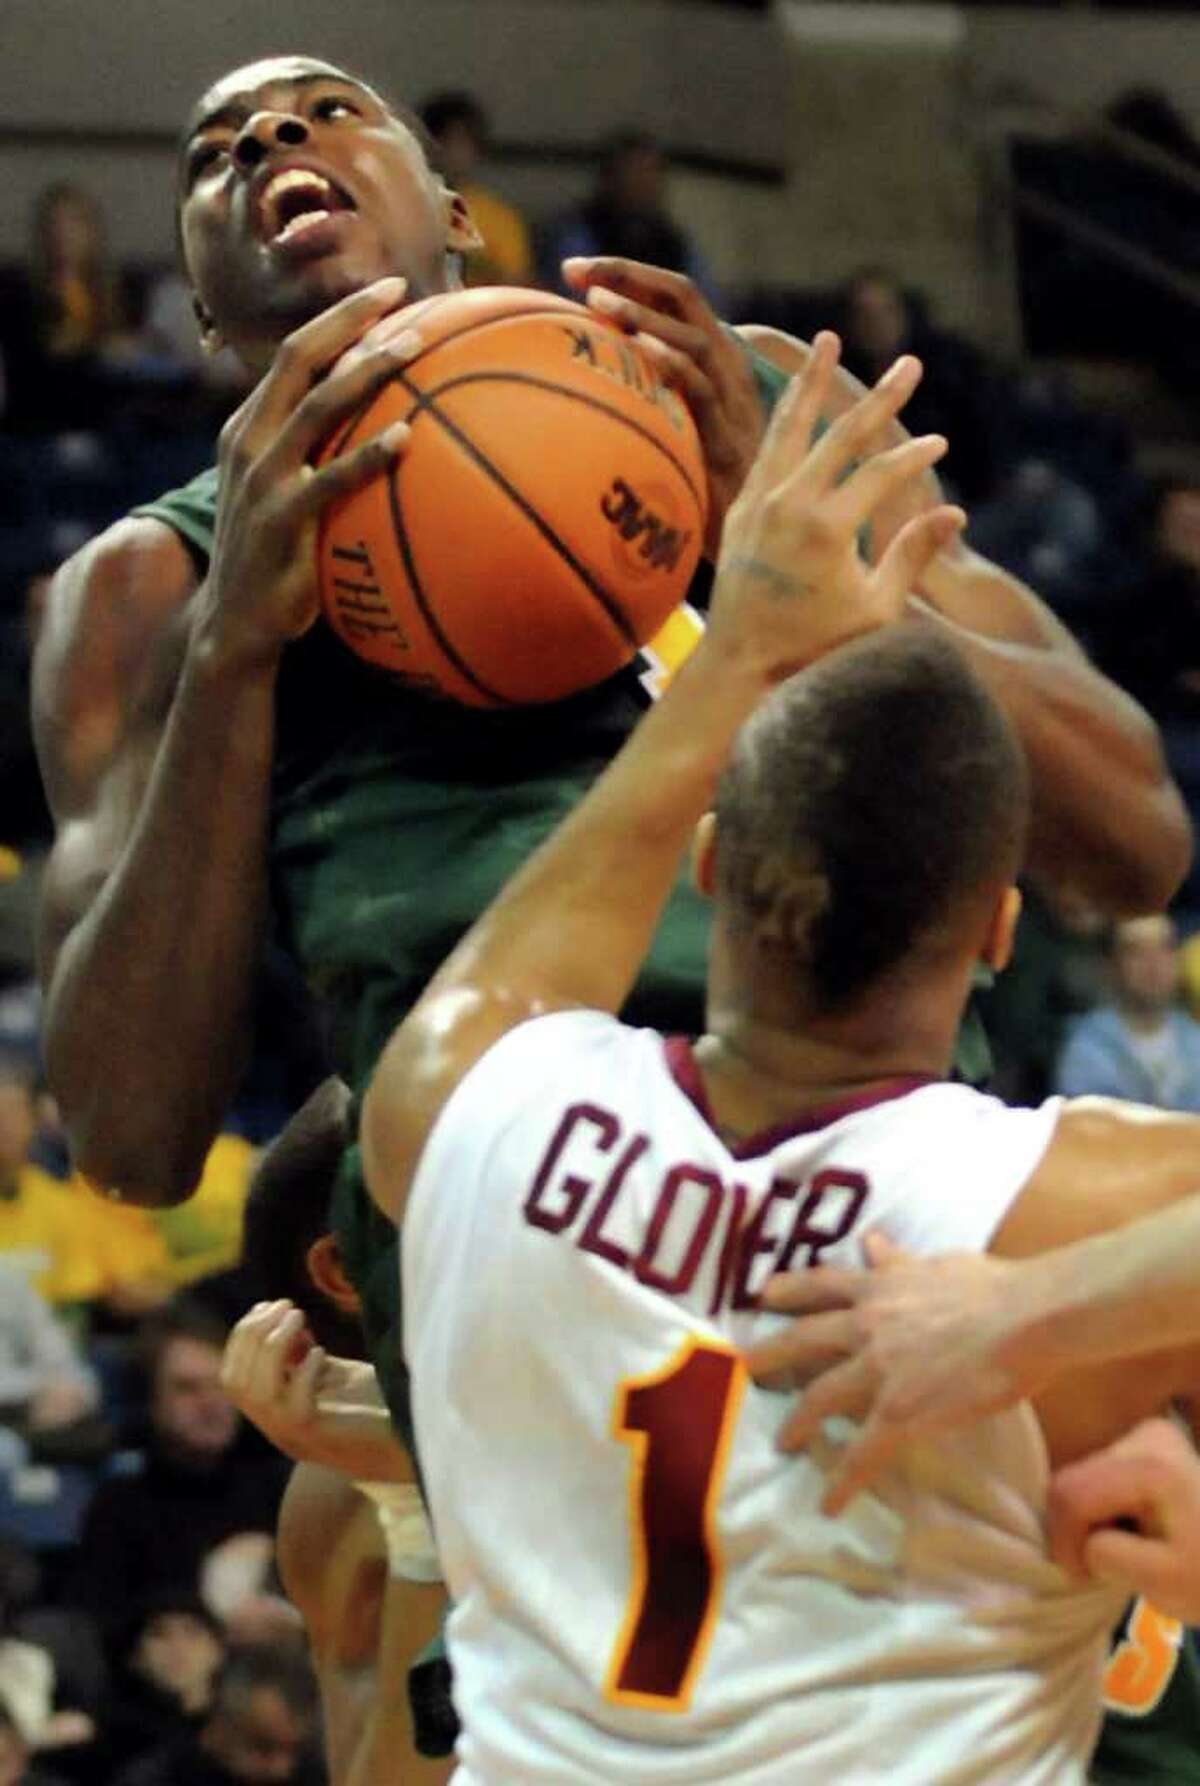 Siena's OD Anosike (1) left, secures a rebound and looks to shoot as Iona's Mike Glover (1) defends during their basketball game at the MAAC Championships on Saturday, March 5, 2011, at Webster Bank Arena at Harbor Yard in Bridgeport, Conn. (Cindy Schultz / Times Union)